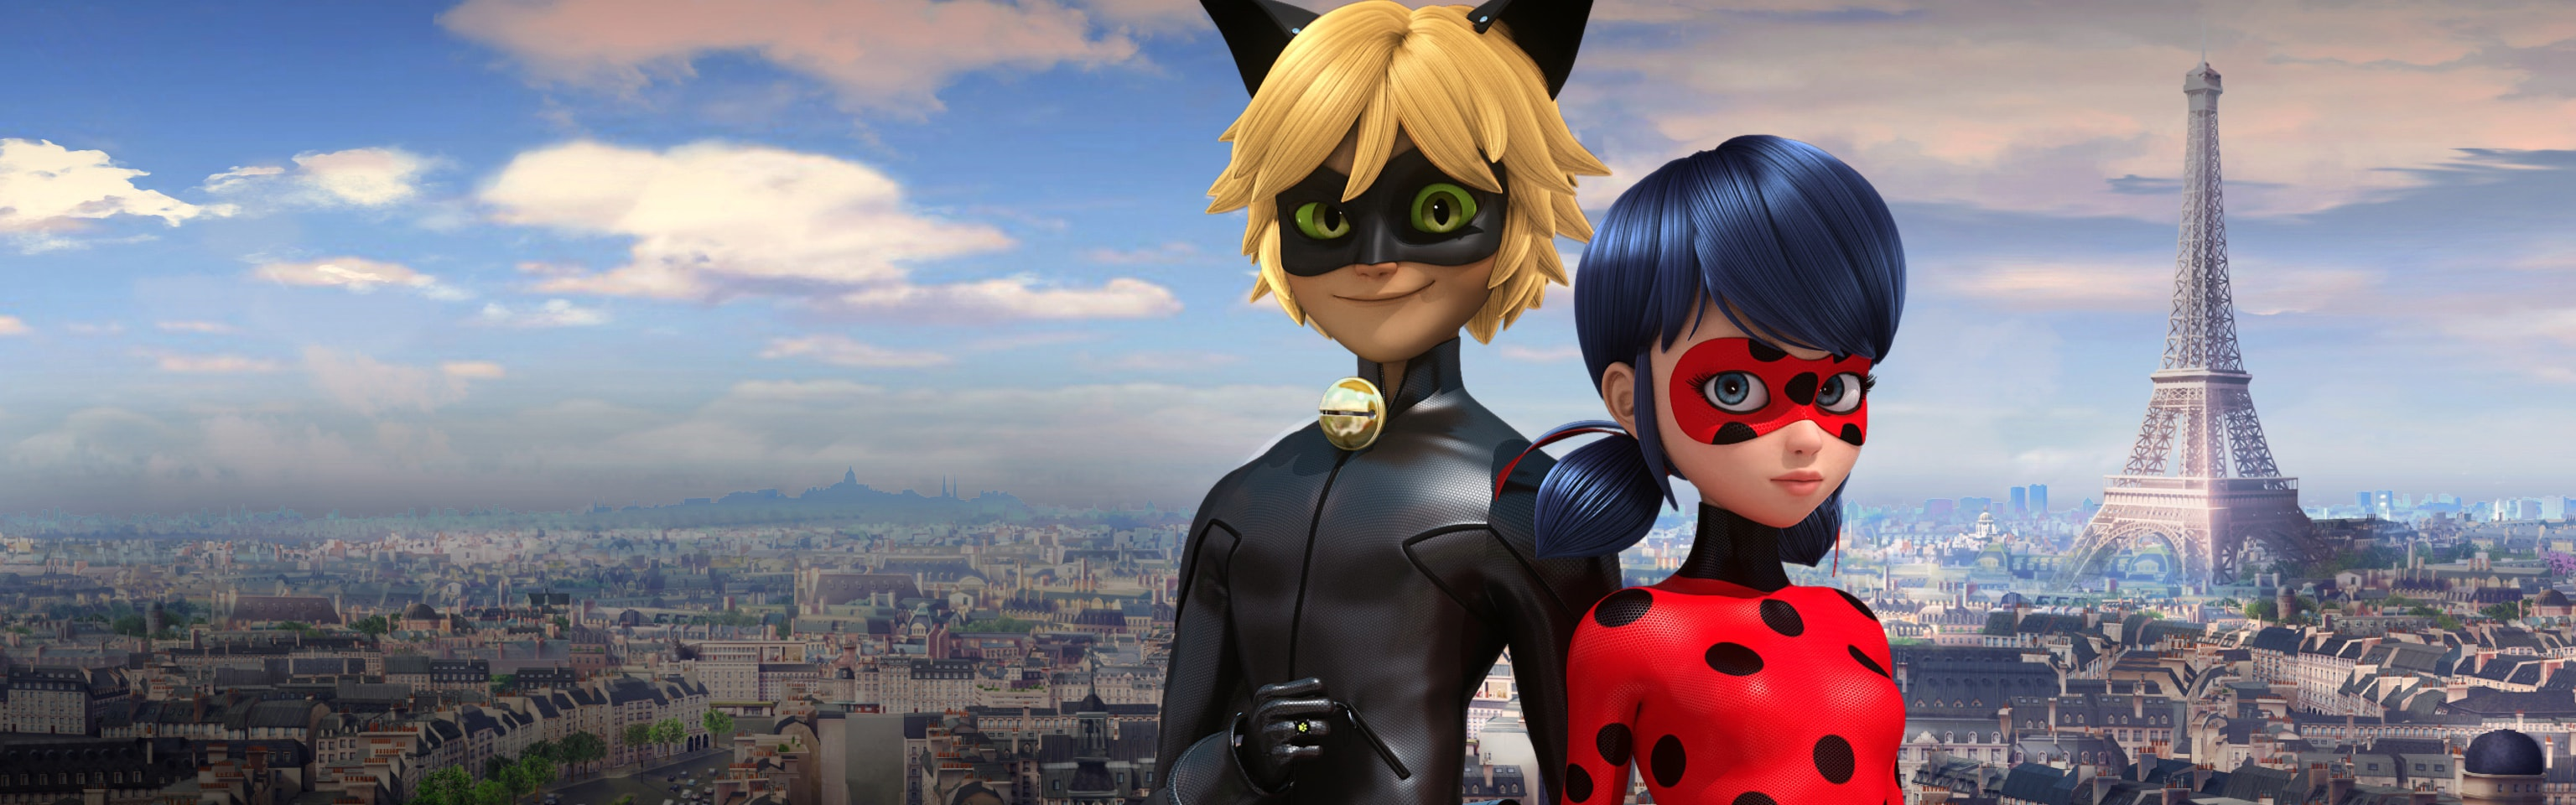 Miraculous - Homepage Hero Banner Test